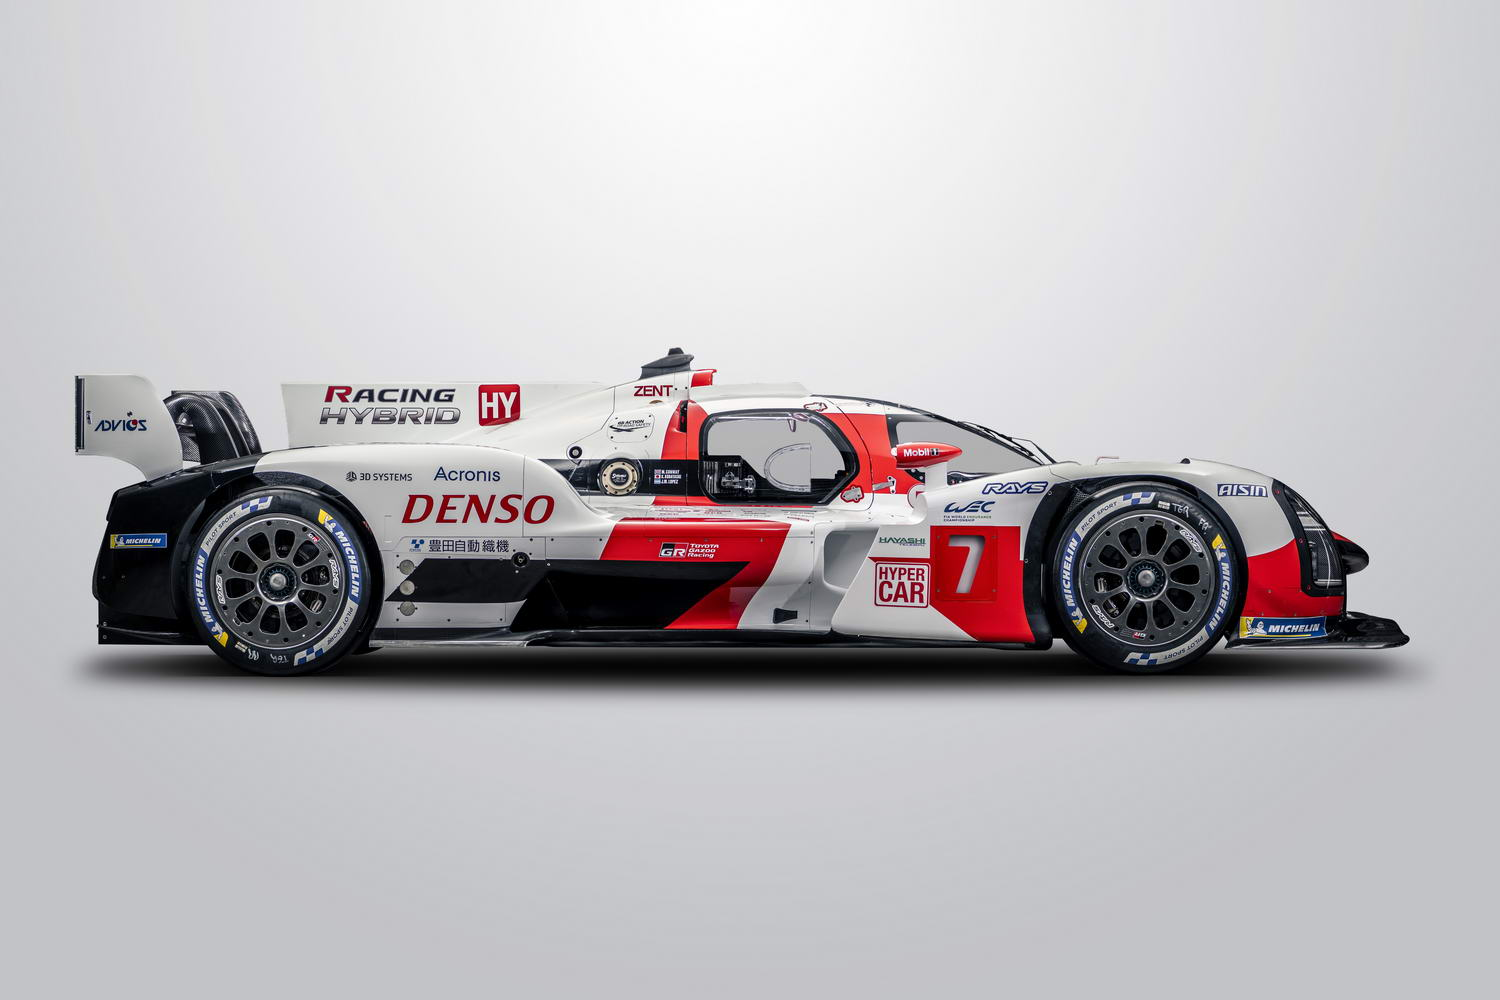 Car News | Toyota shows off dramatic new Le Mans racer | CompleteCar.ie